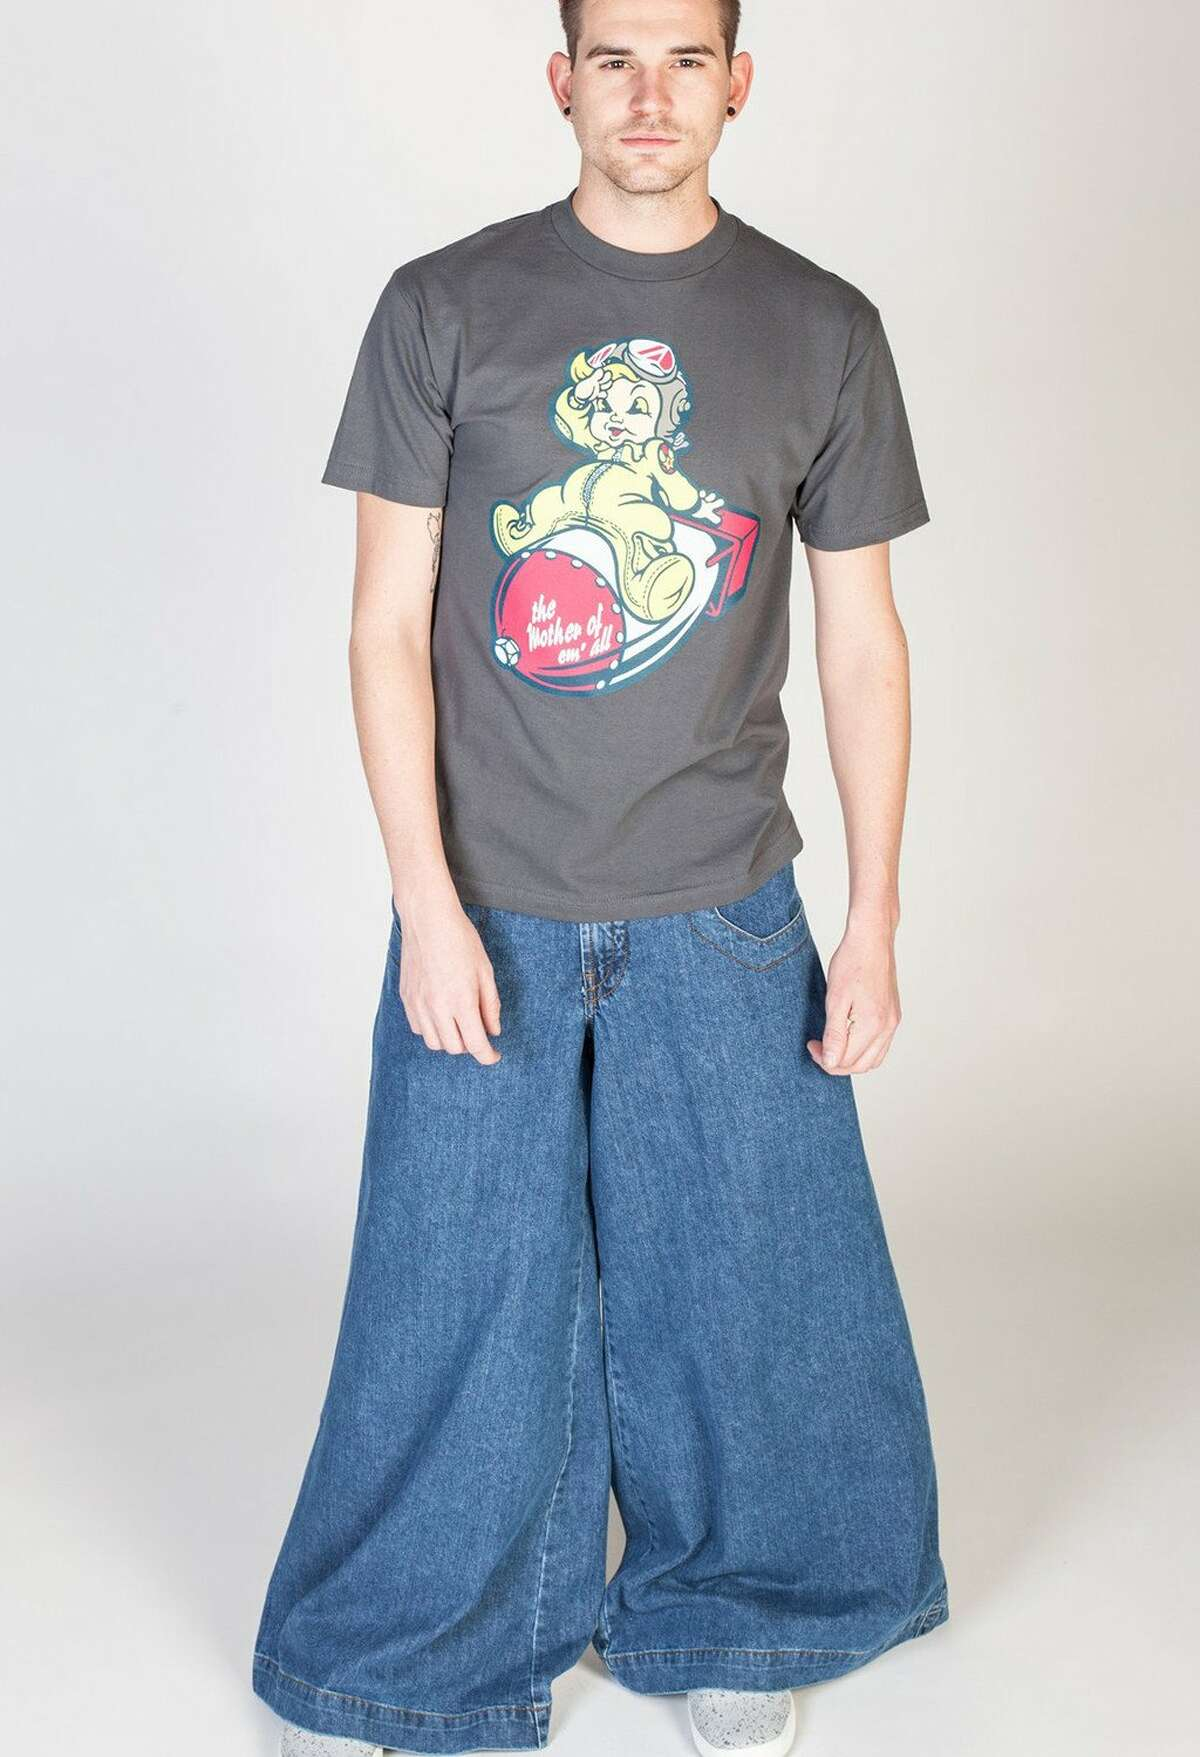 JNCO Mammoth Jeans: Regularly priced $122.98, on sale for $109.90